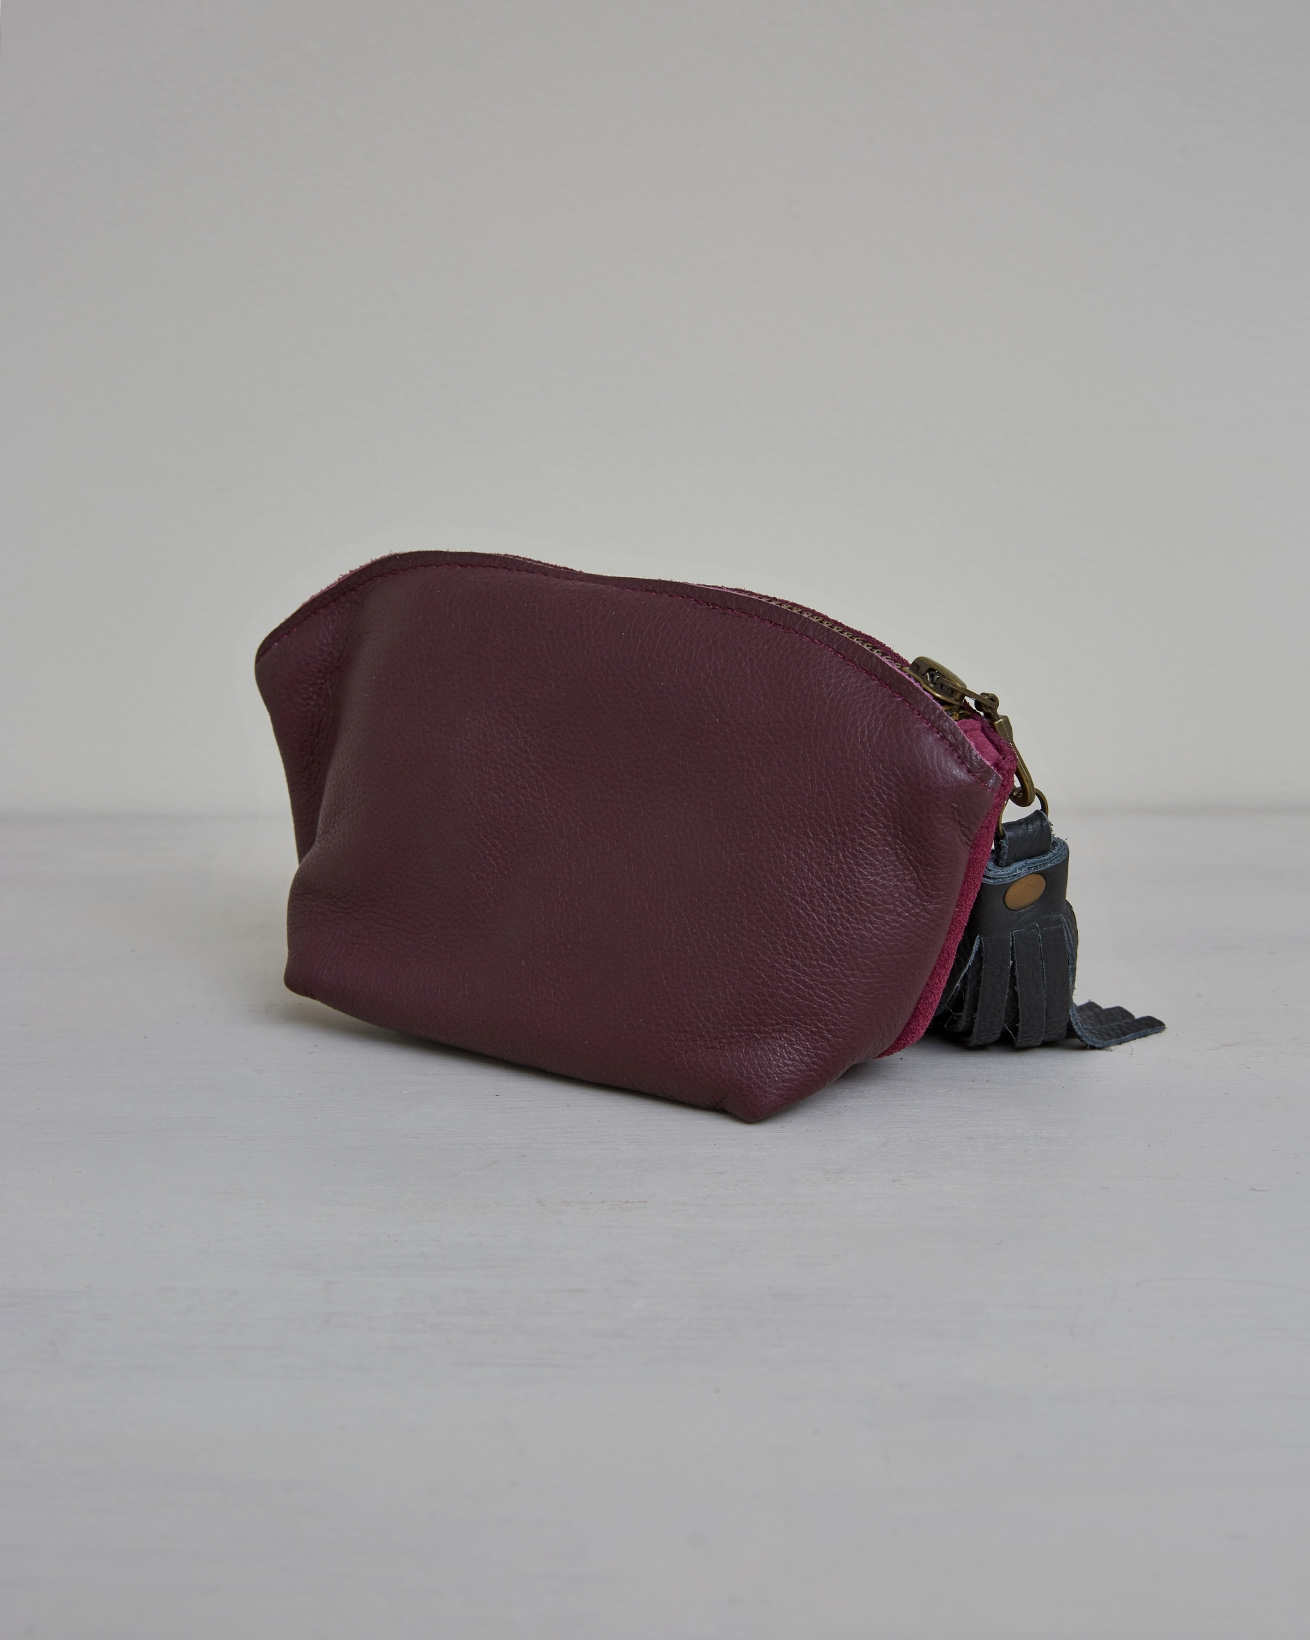 Cosmetics Pouch Bag Tidy - One/Size - Damson -2421